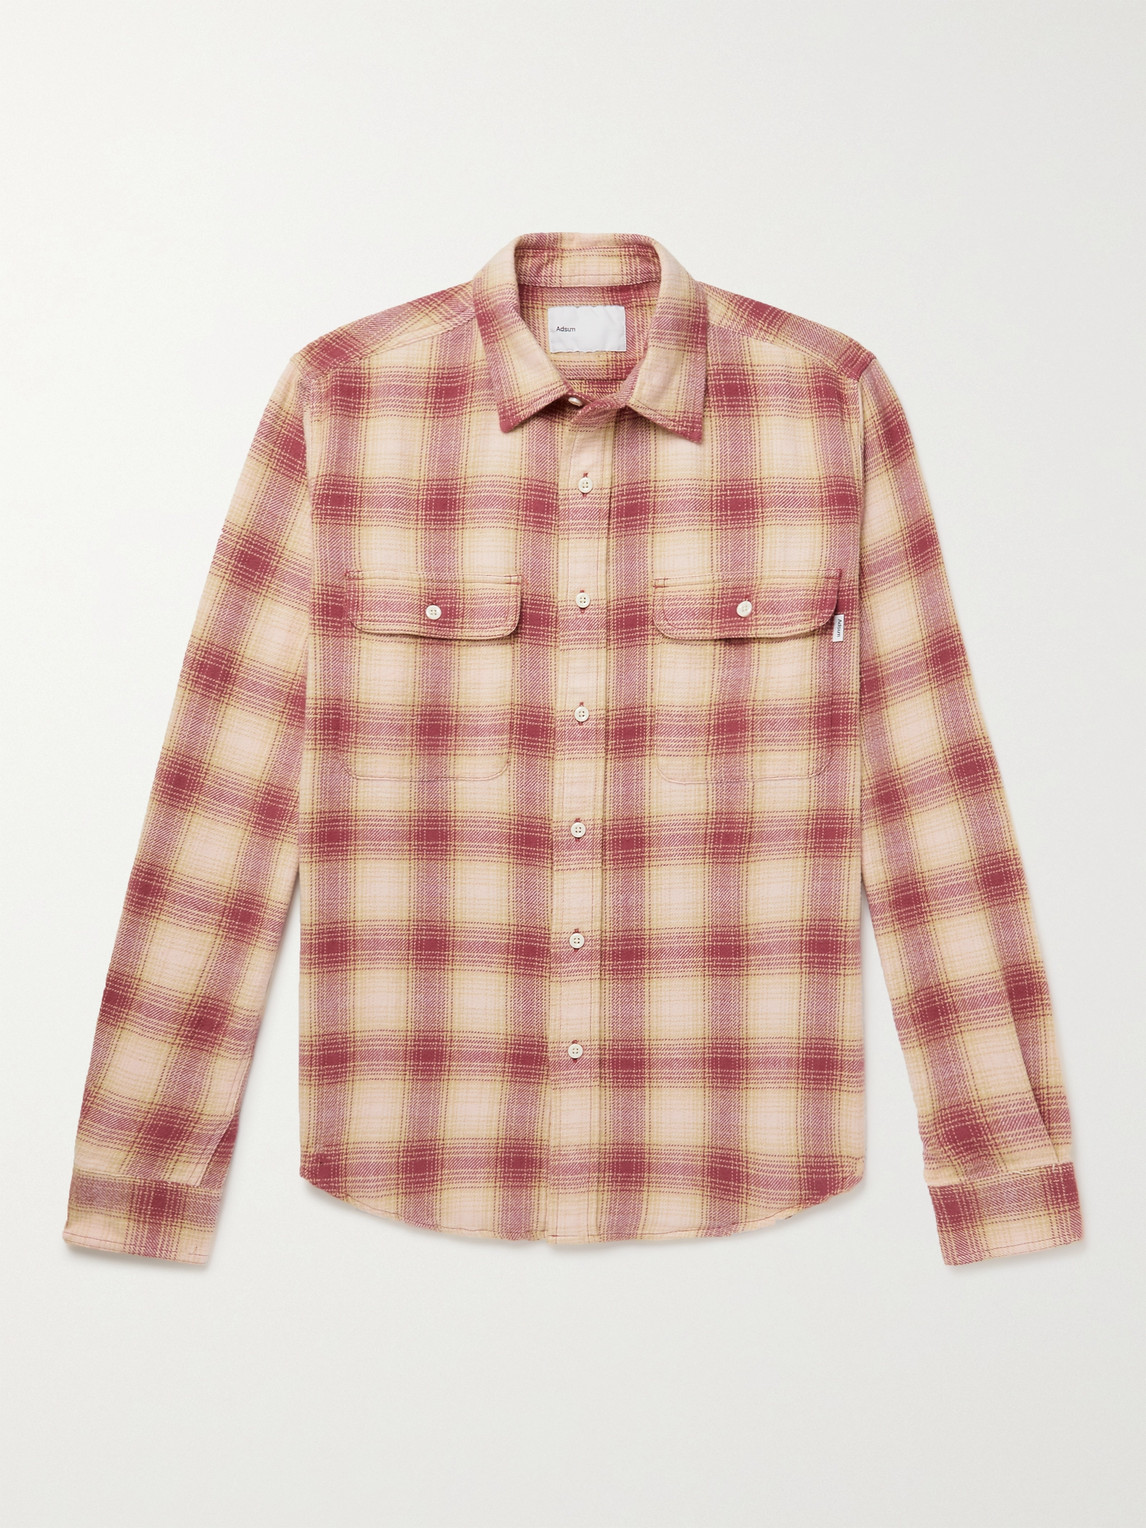 Adsum Seasonal Shadow Checked Cotton-flannel Shirt In Pink